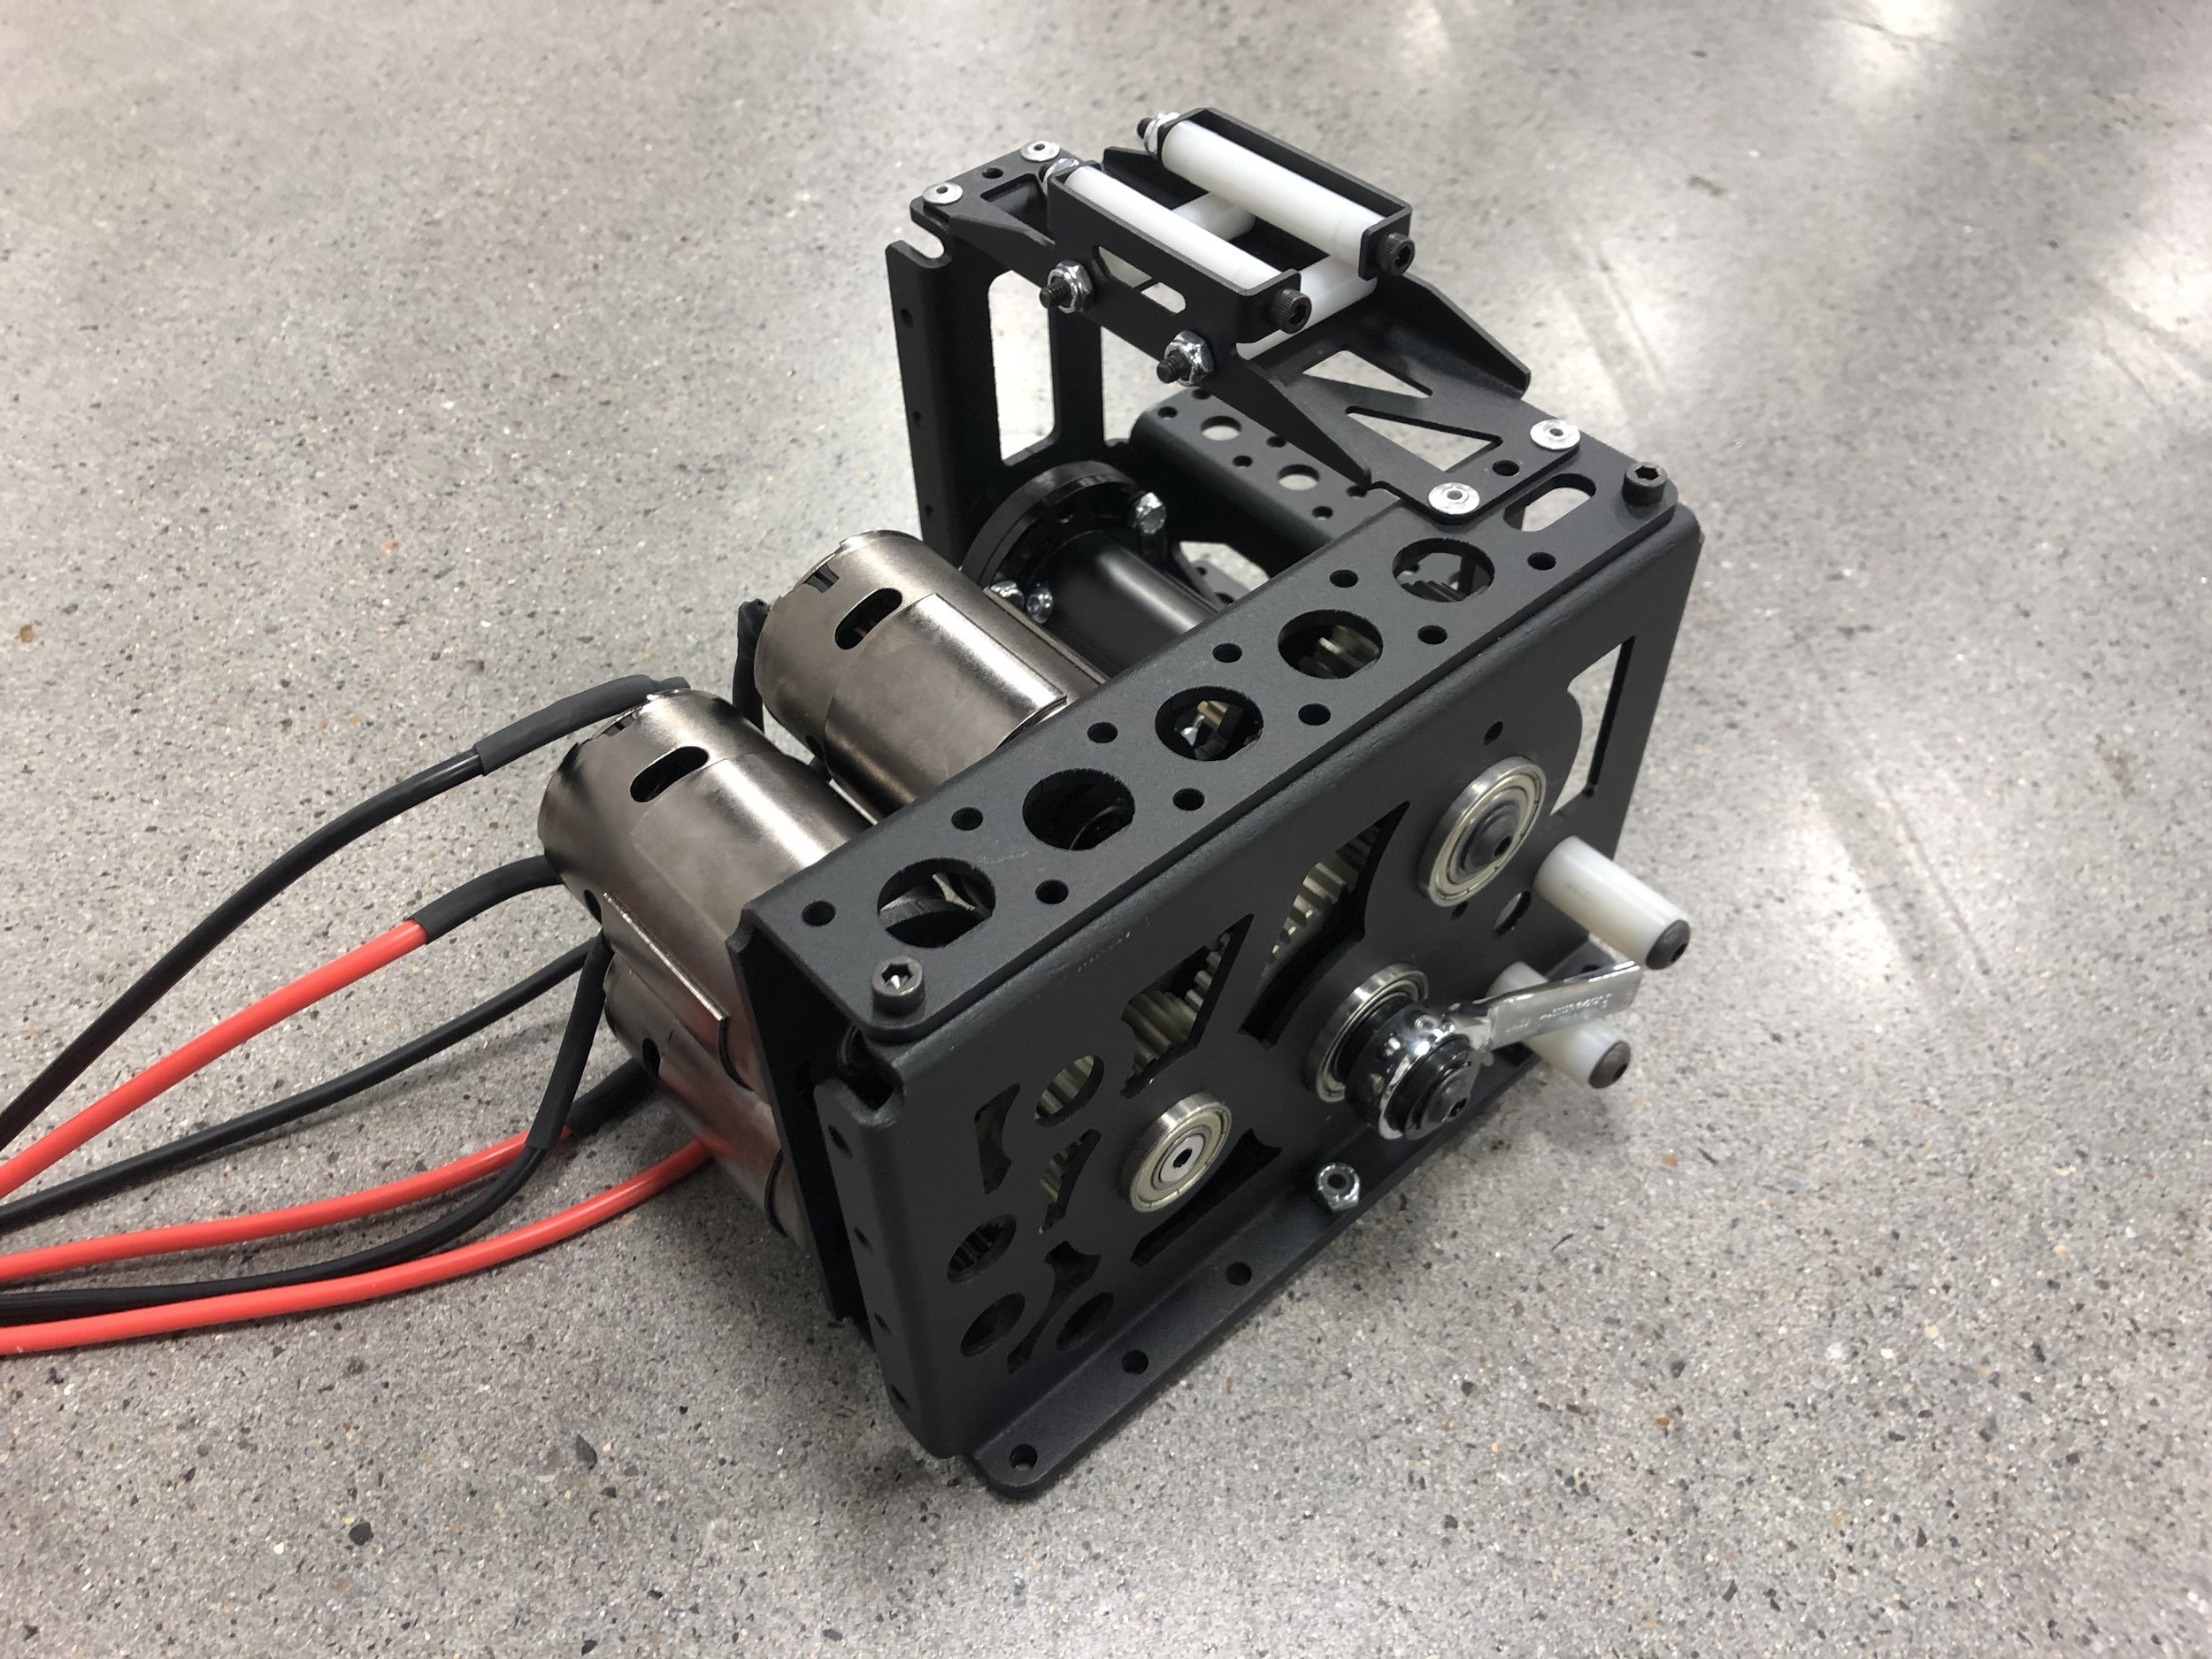 The climber gearbox has not changed since it was built... like, at all. Zero changes. We salute you climber gearbox sub-team.